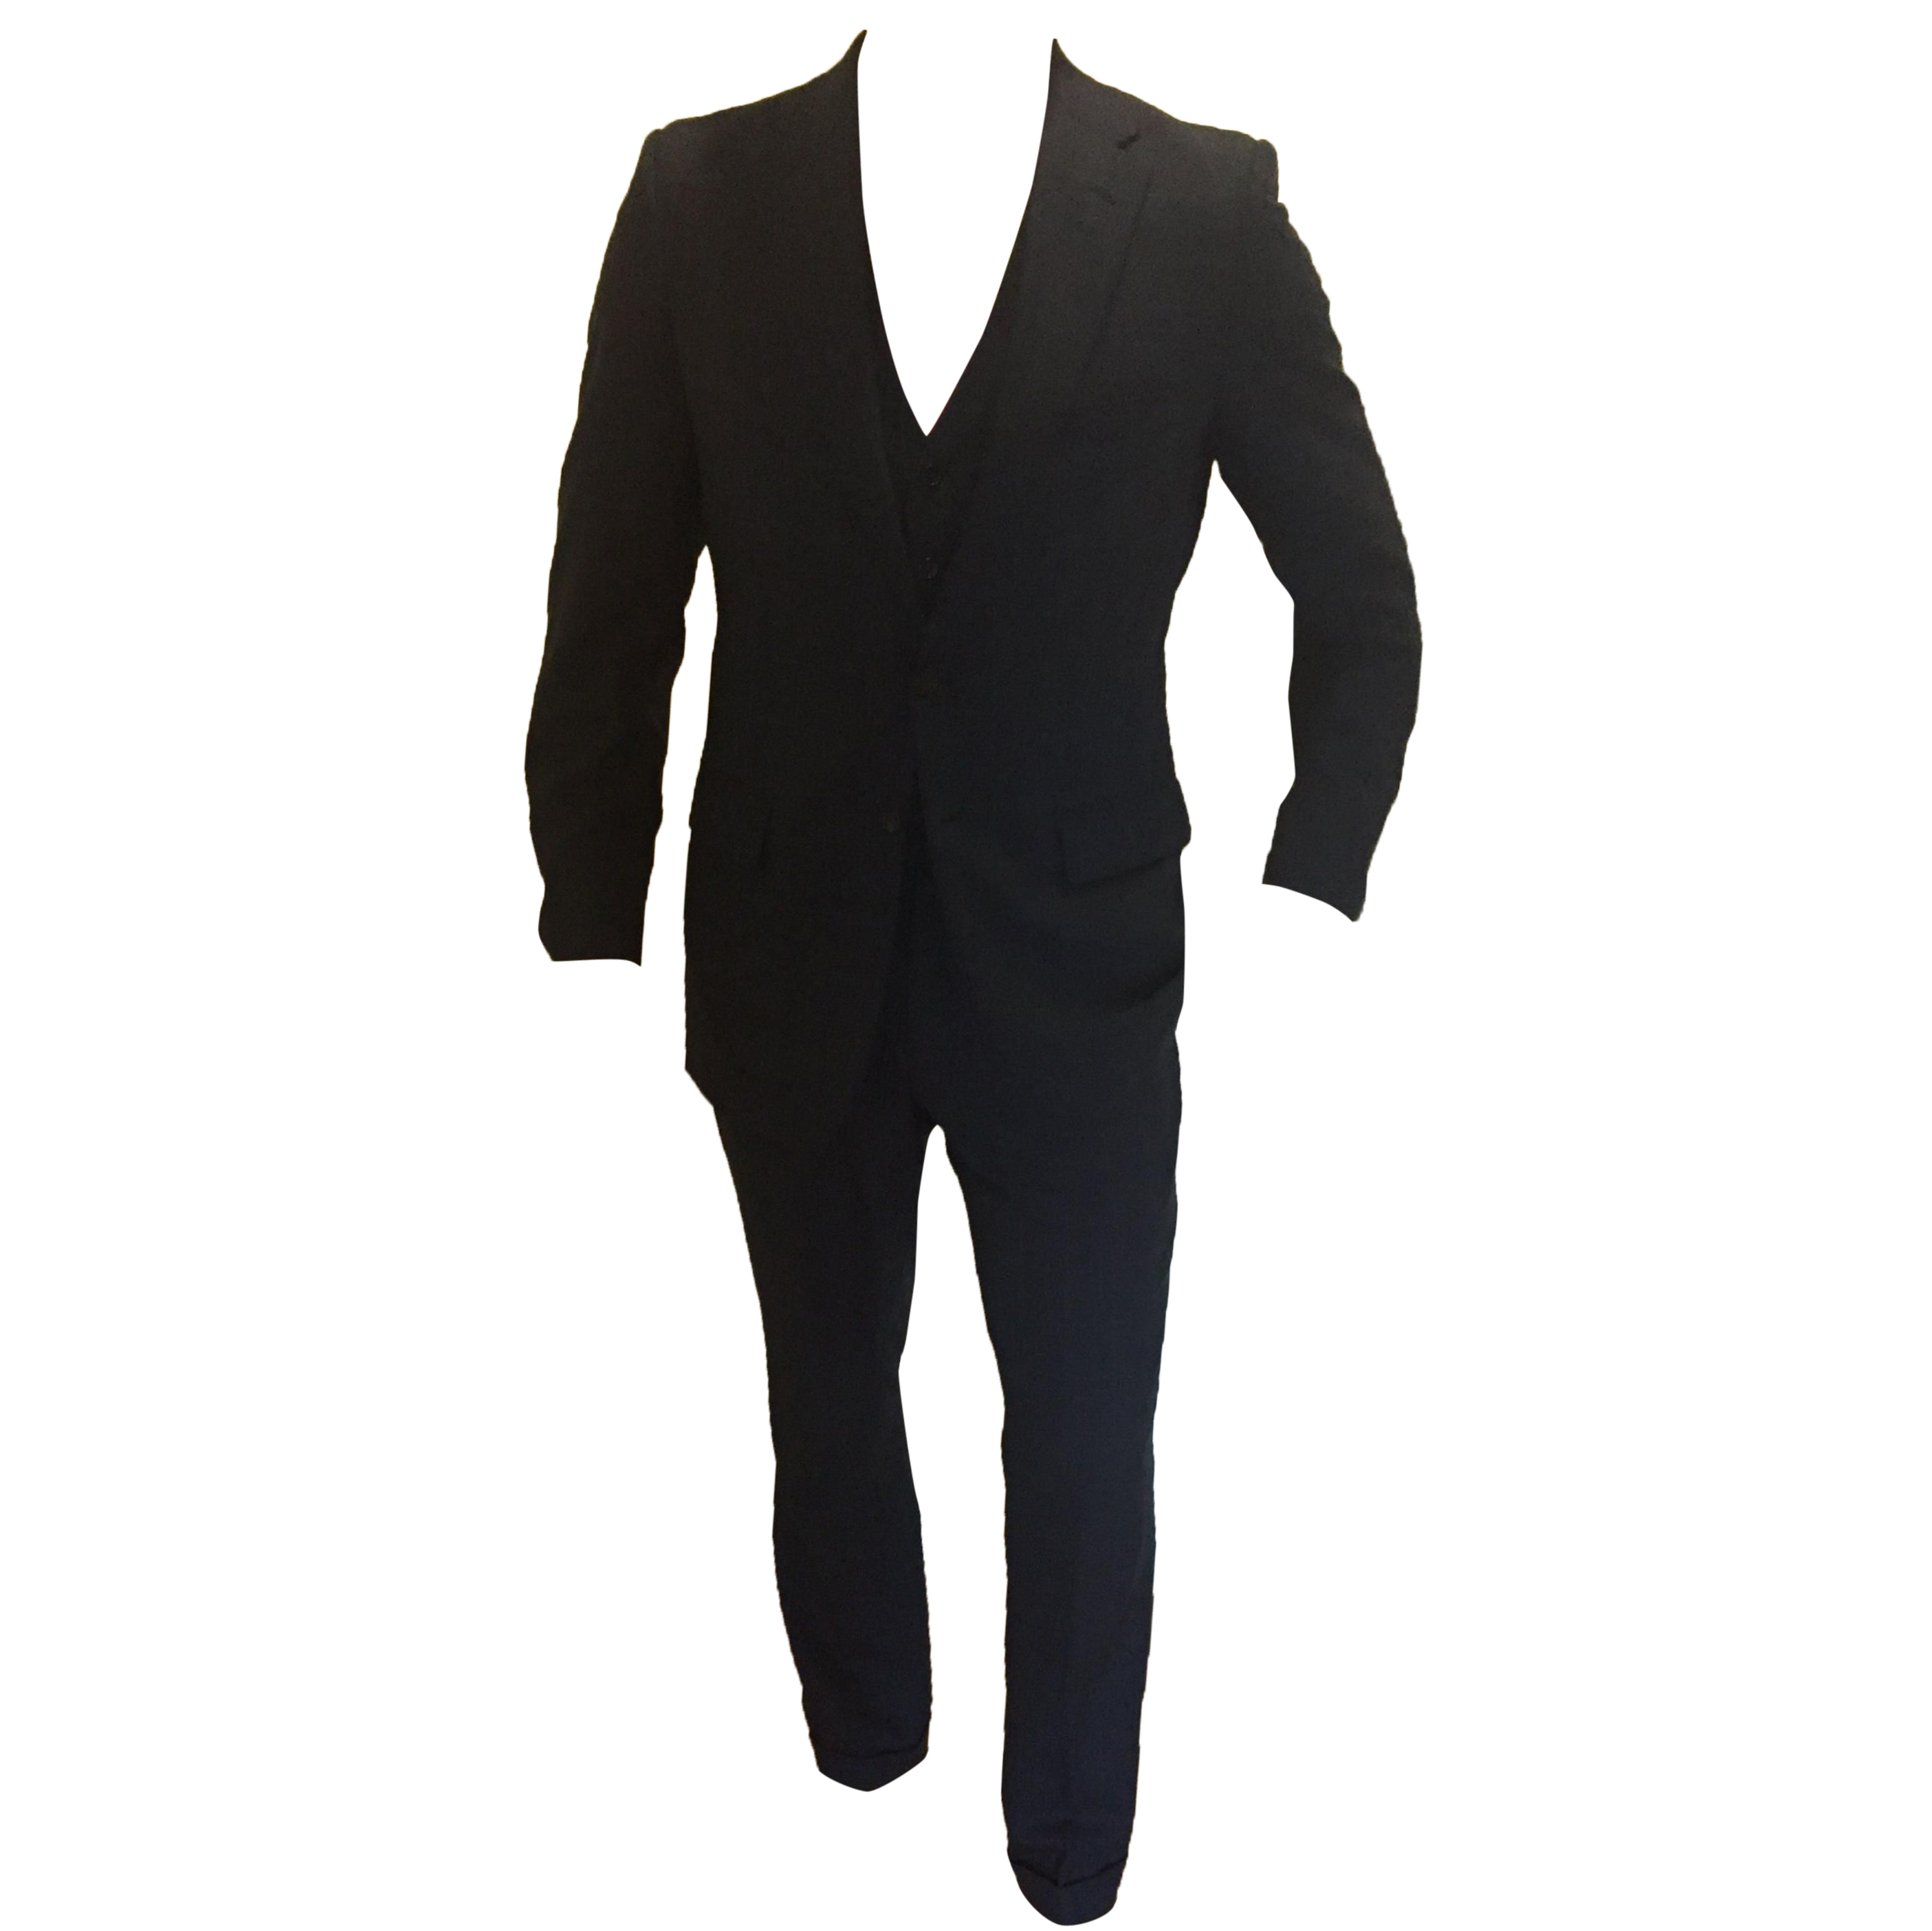 Bespoke suit (Holland and Sherry of Savile Row)